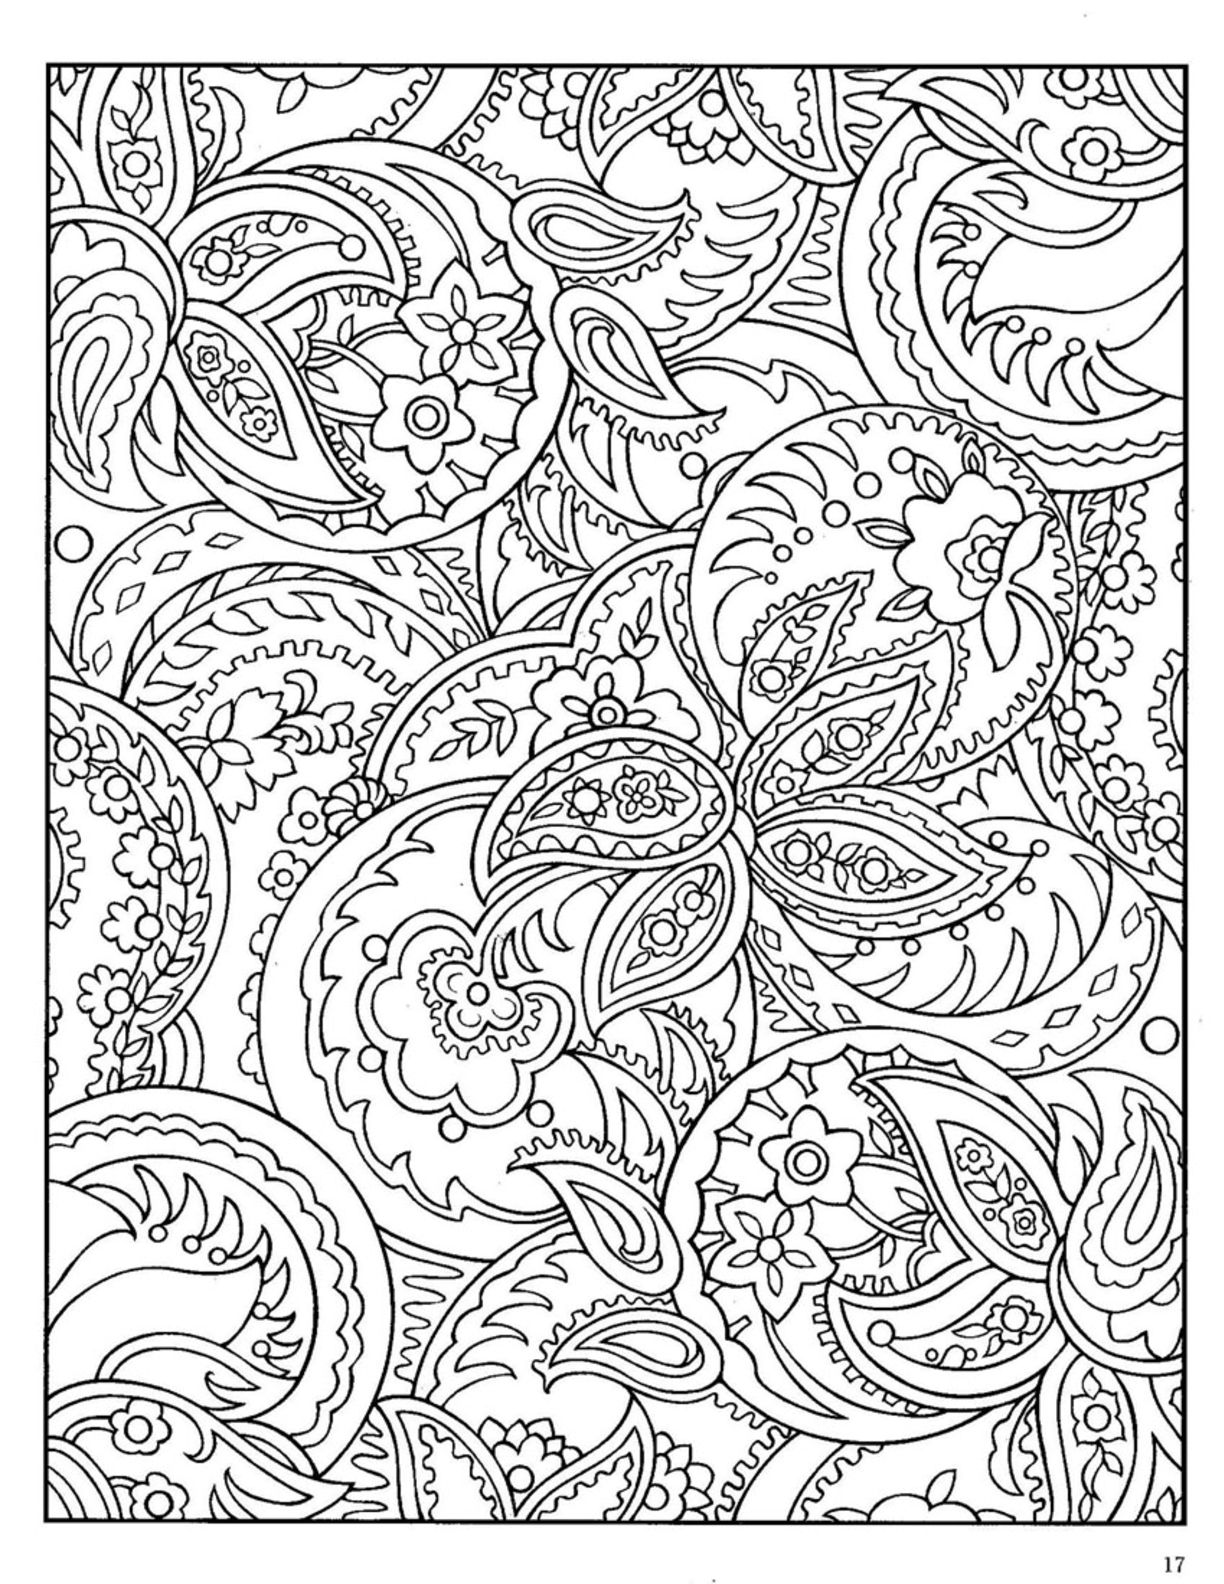 1224x1584 Free Coloring Pages For Adults And Teens Description